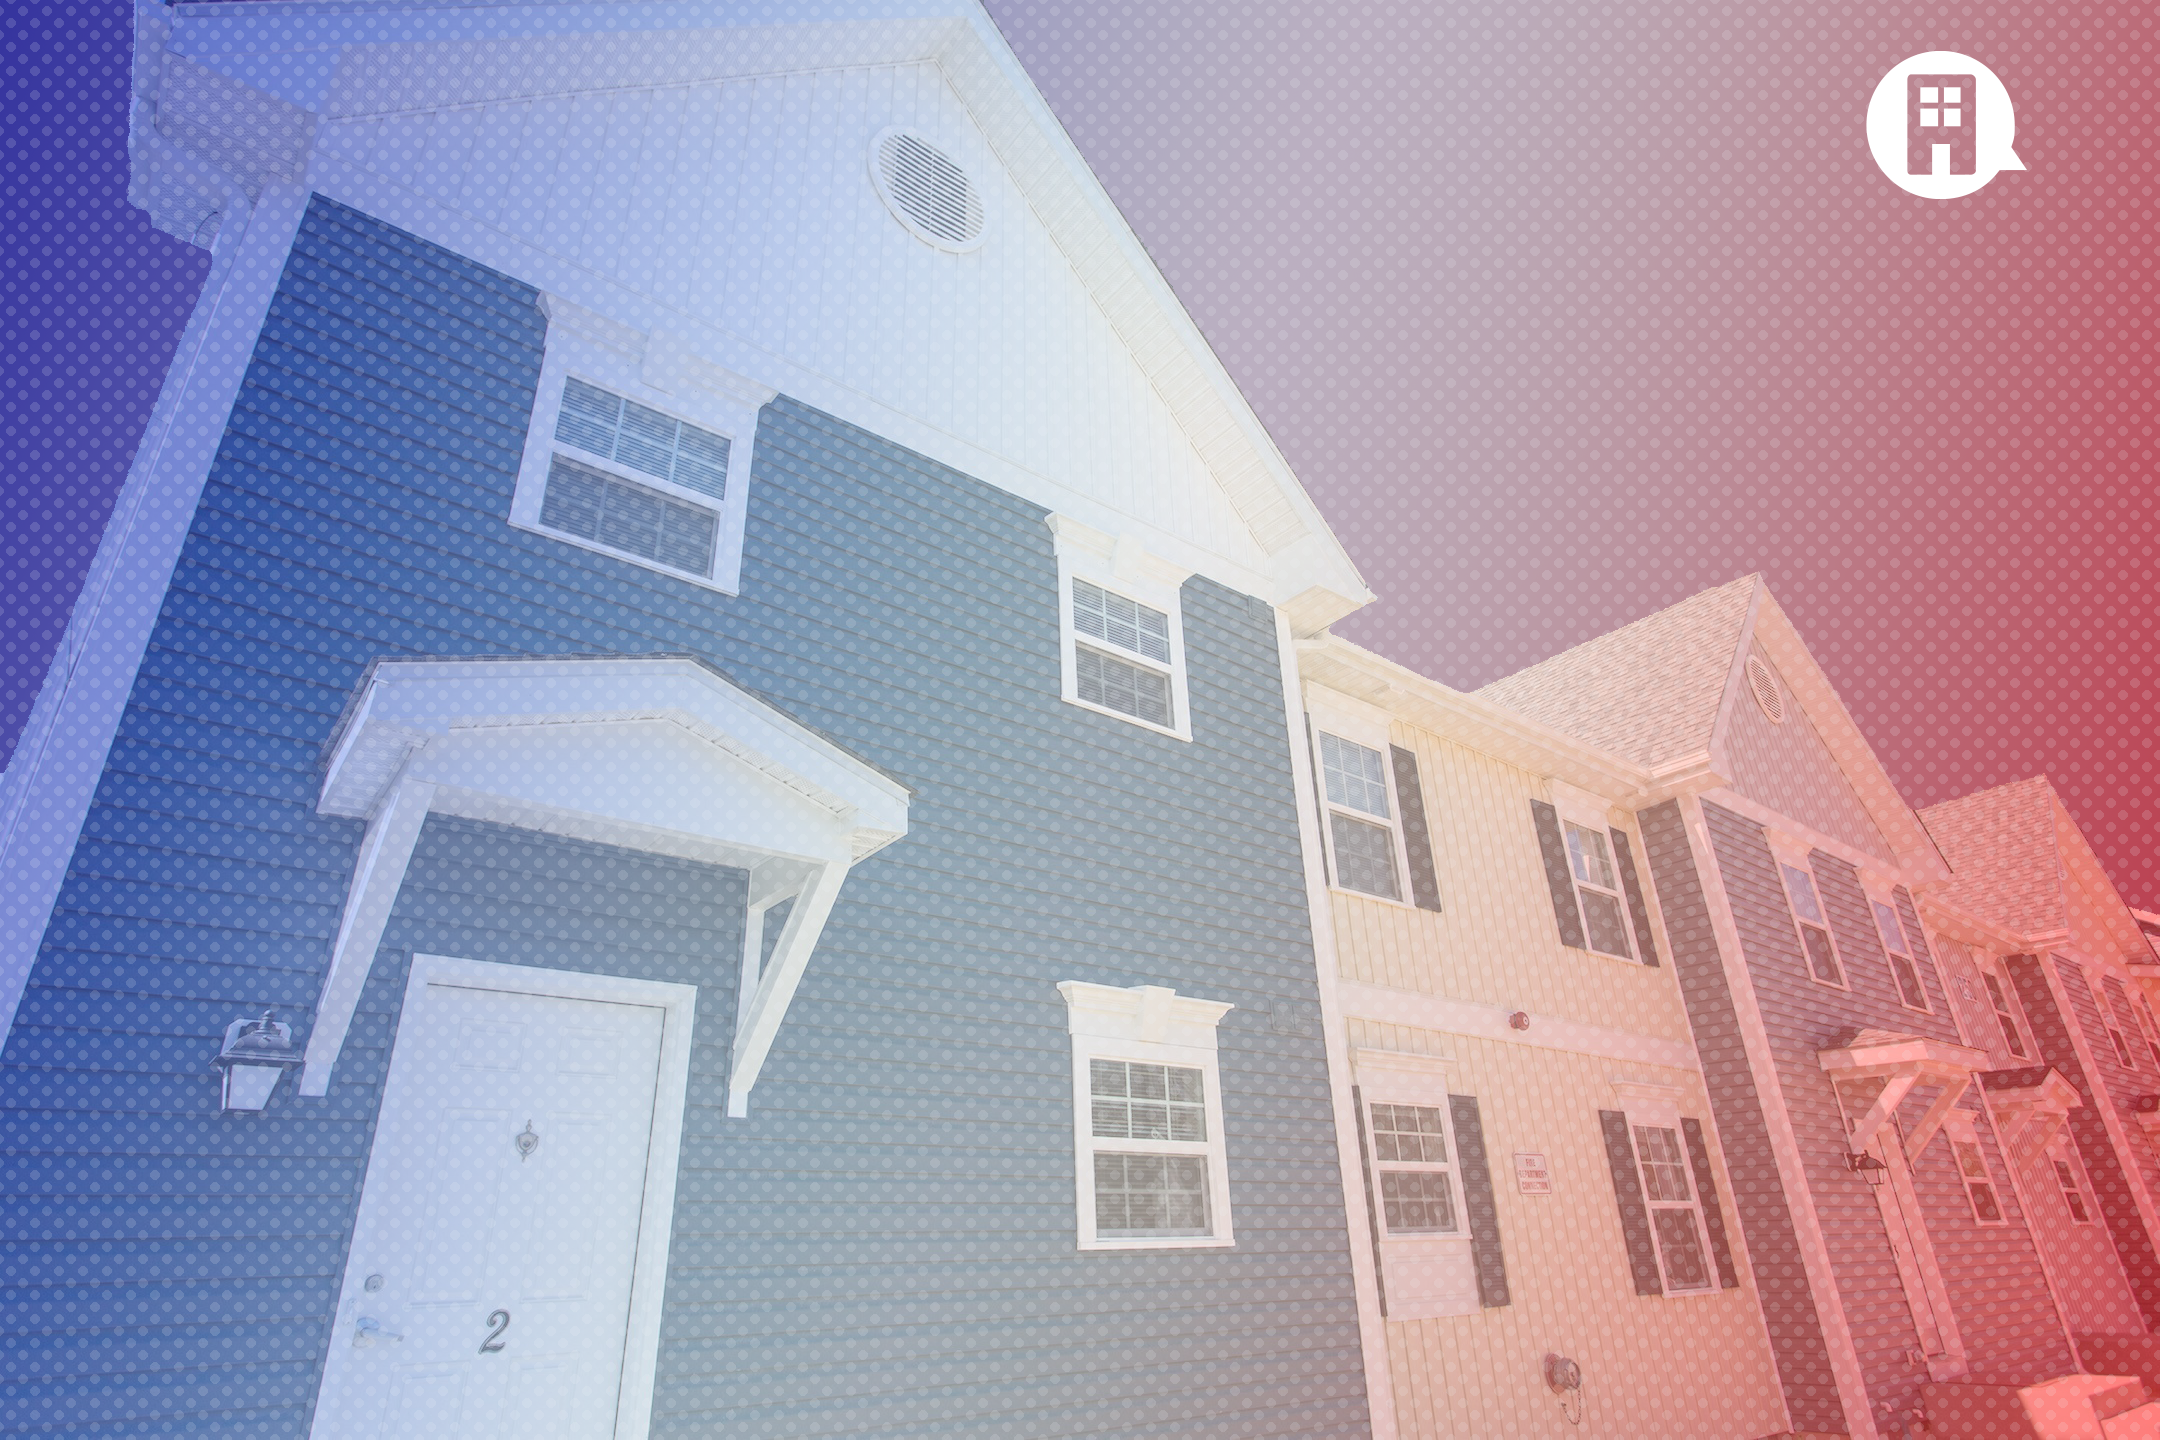 A stylized photograph of an affordable housing property.